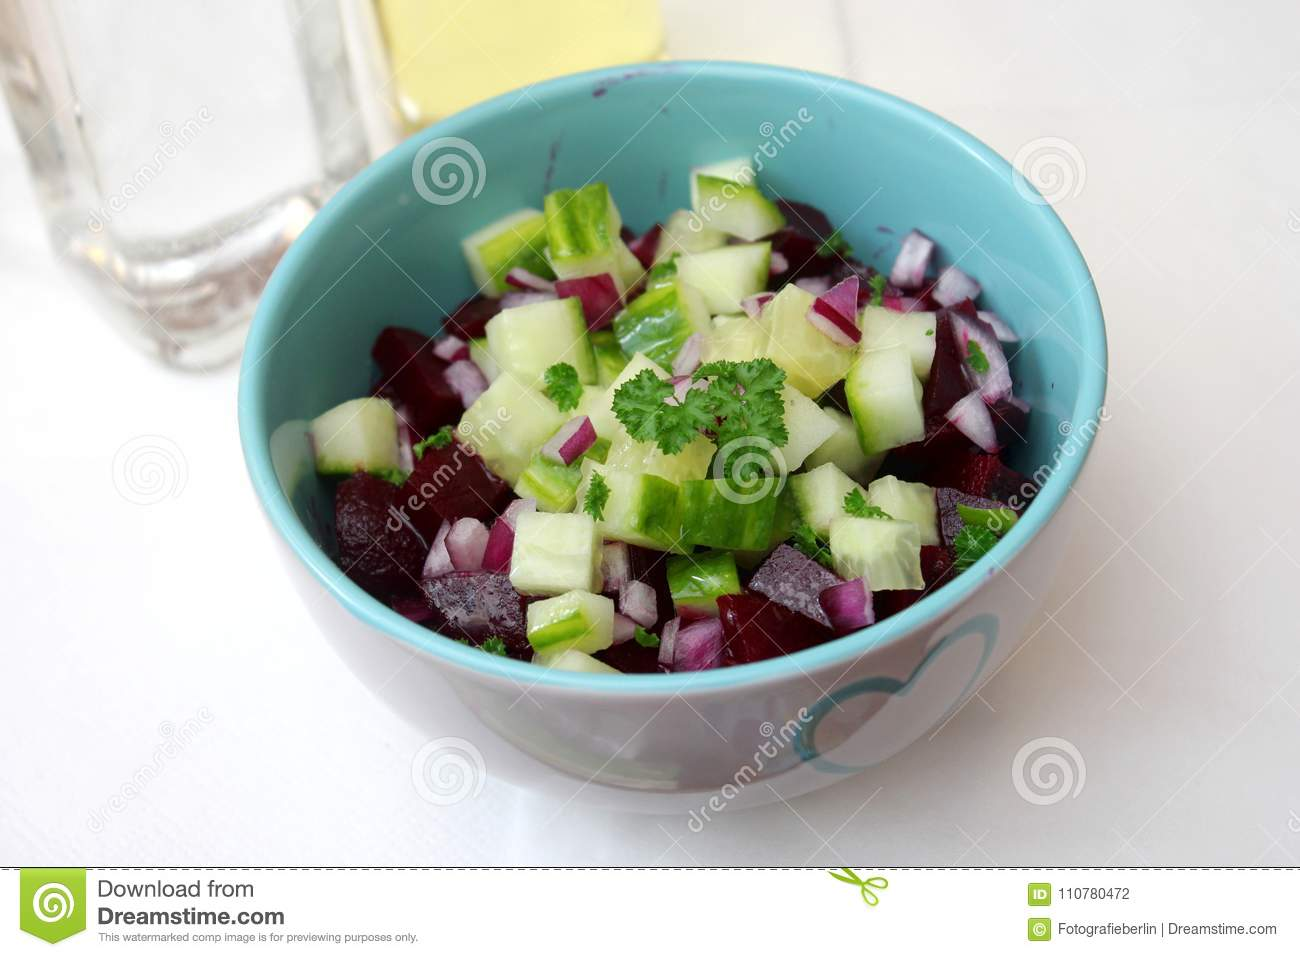 Salad of beet roots with cucumber